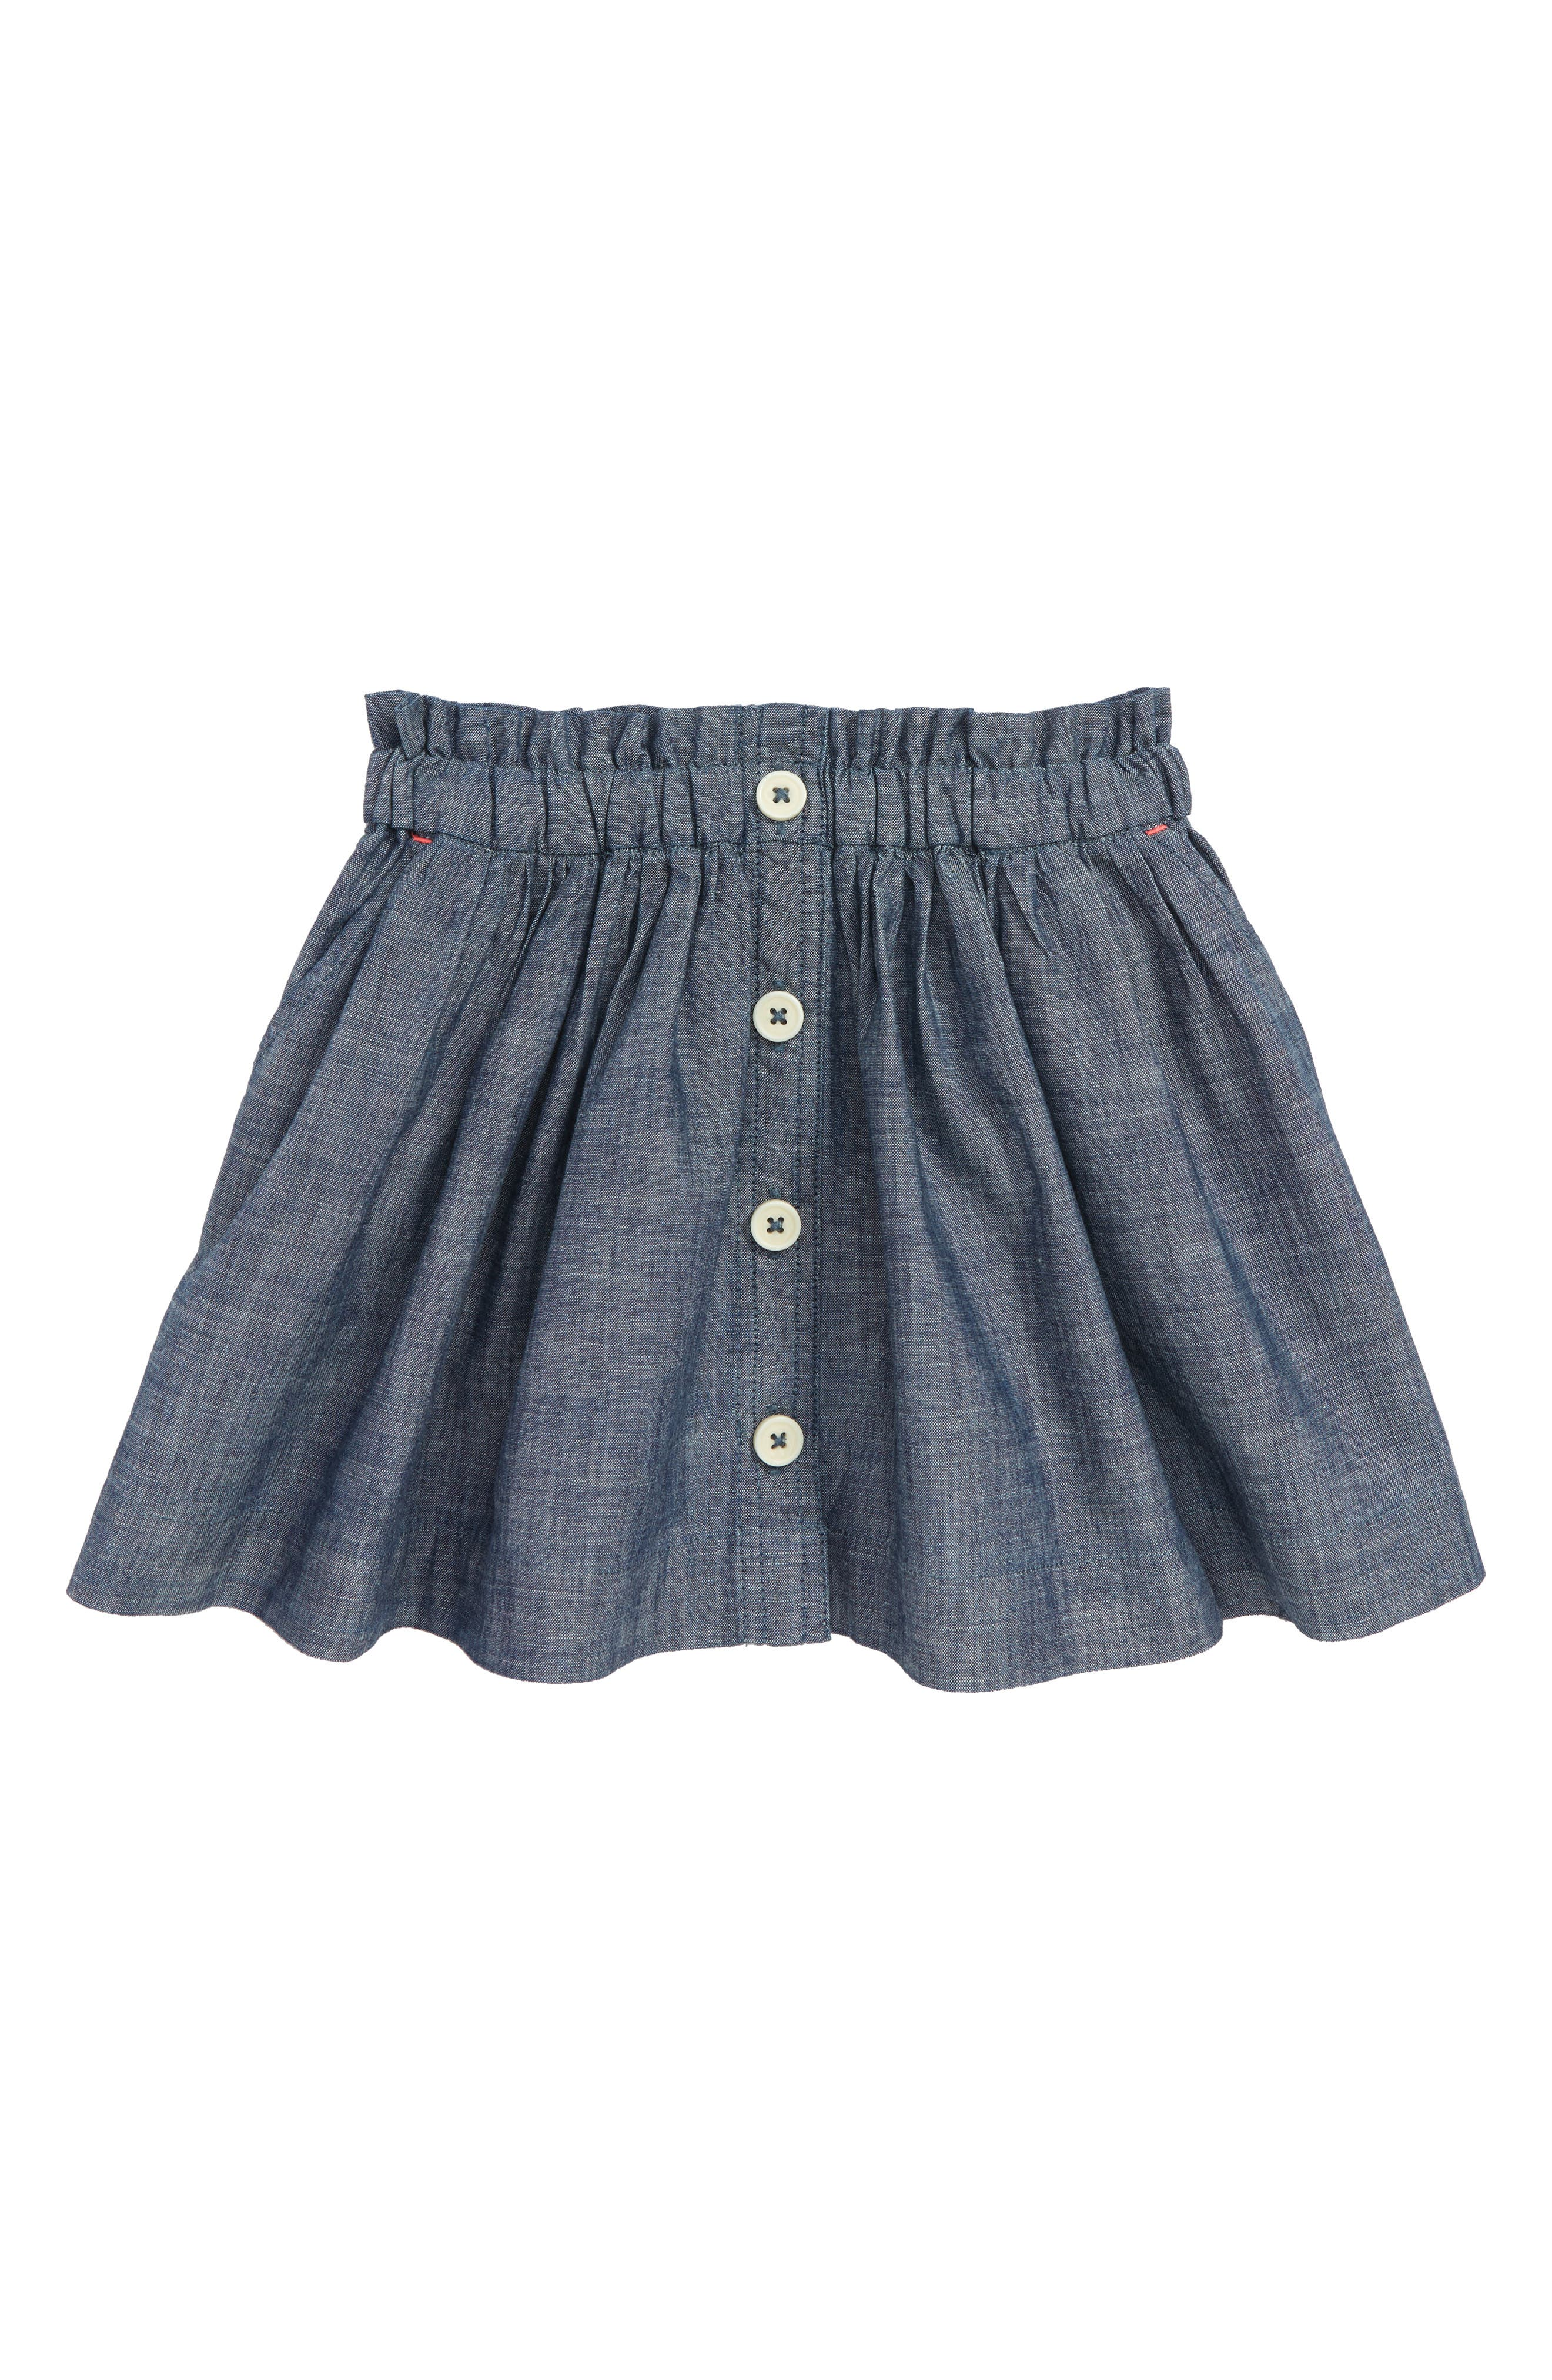 Chambray Button Front Skirt,                             Main thumbnail 1, color,                             400